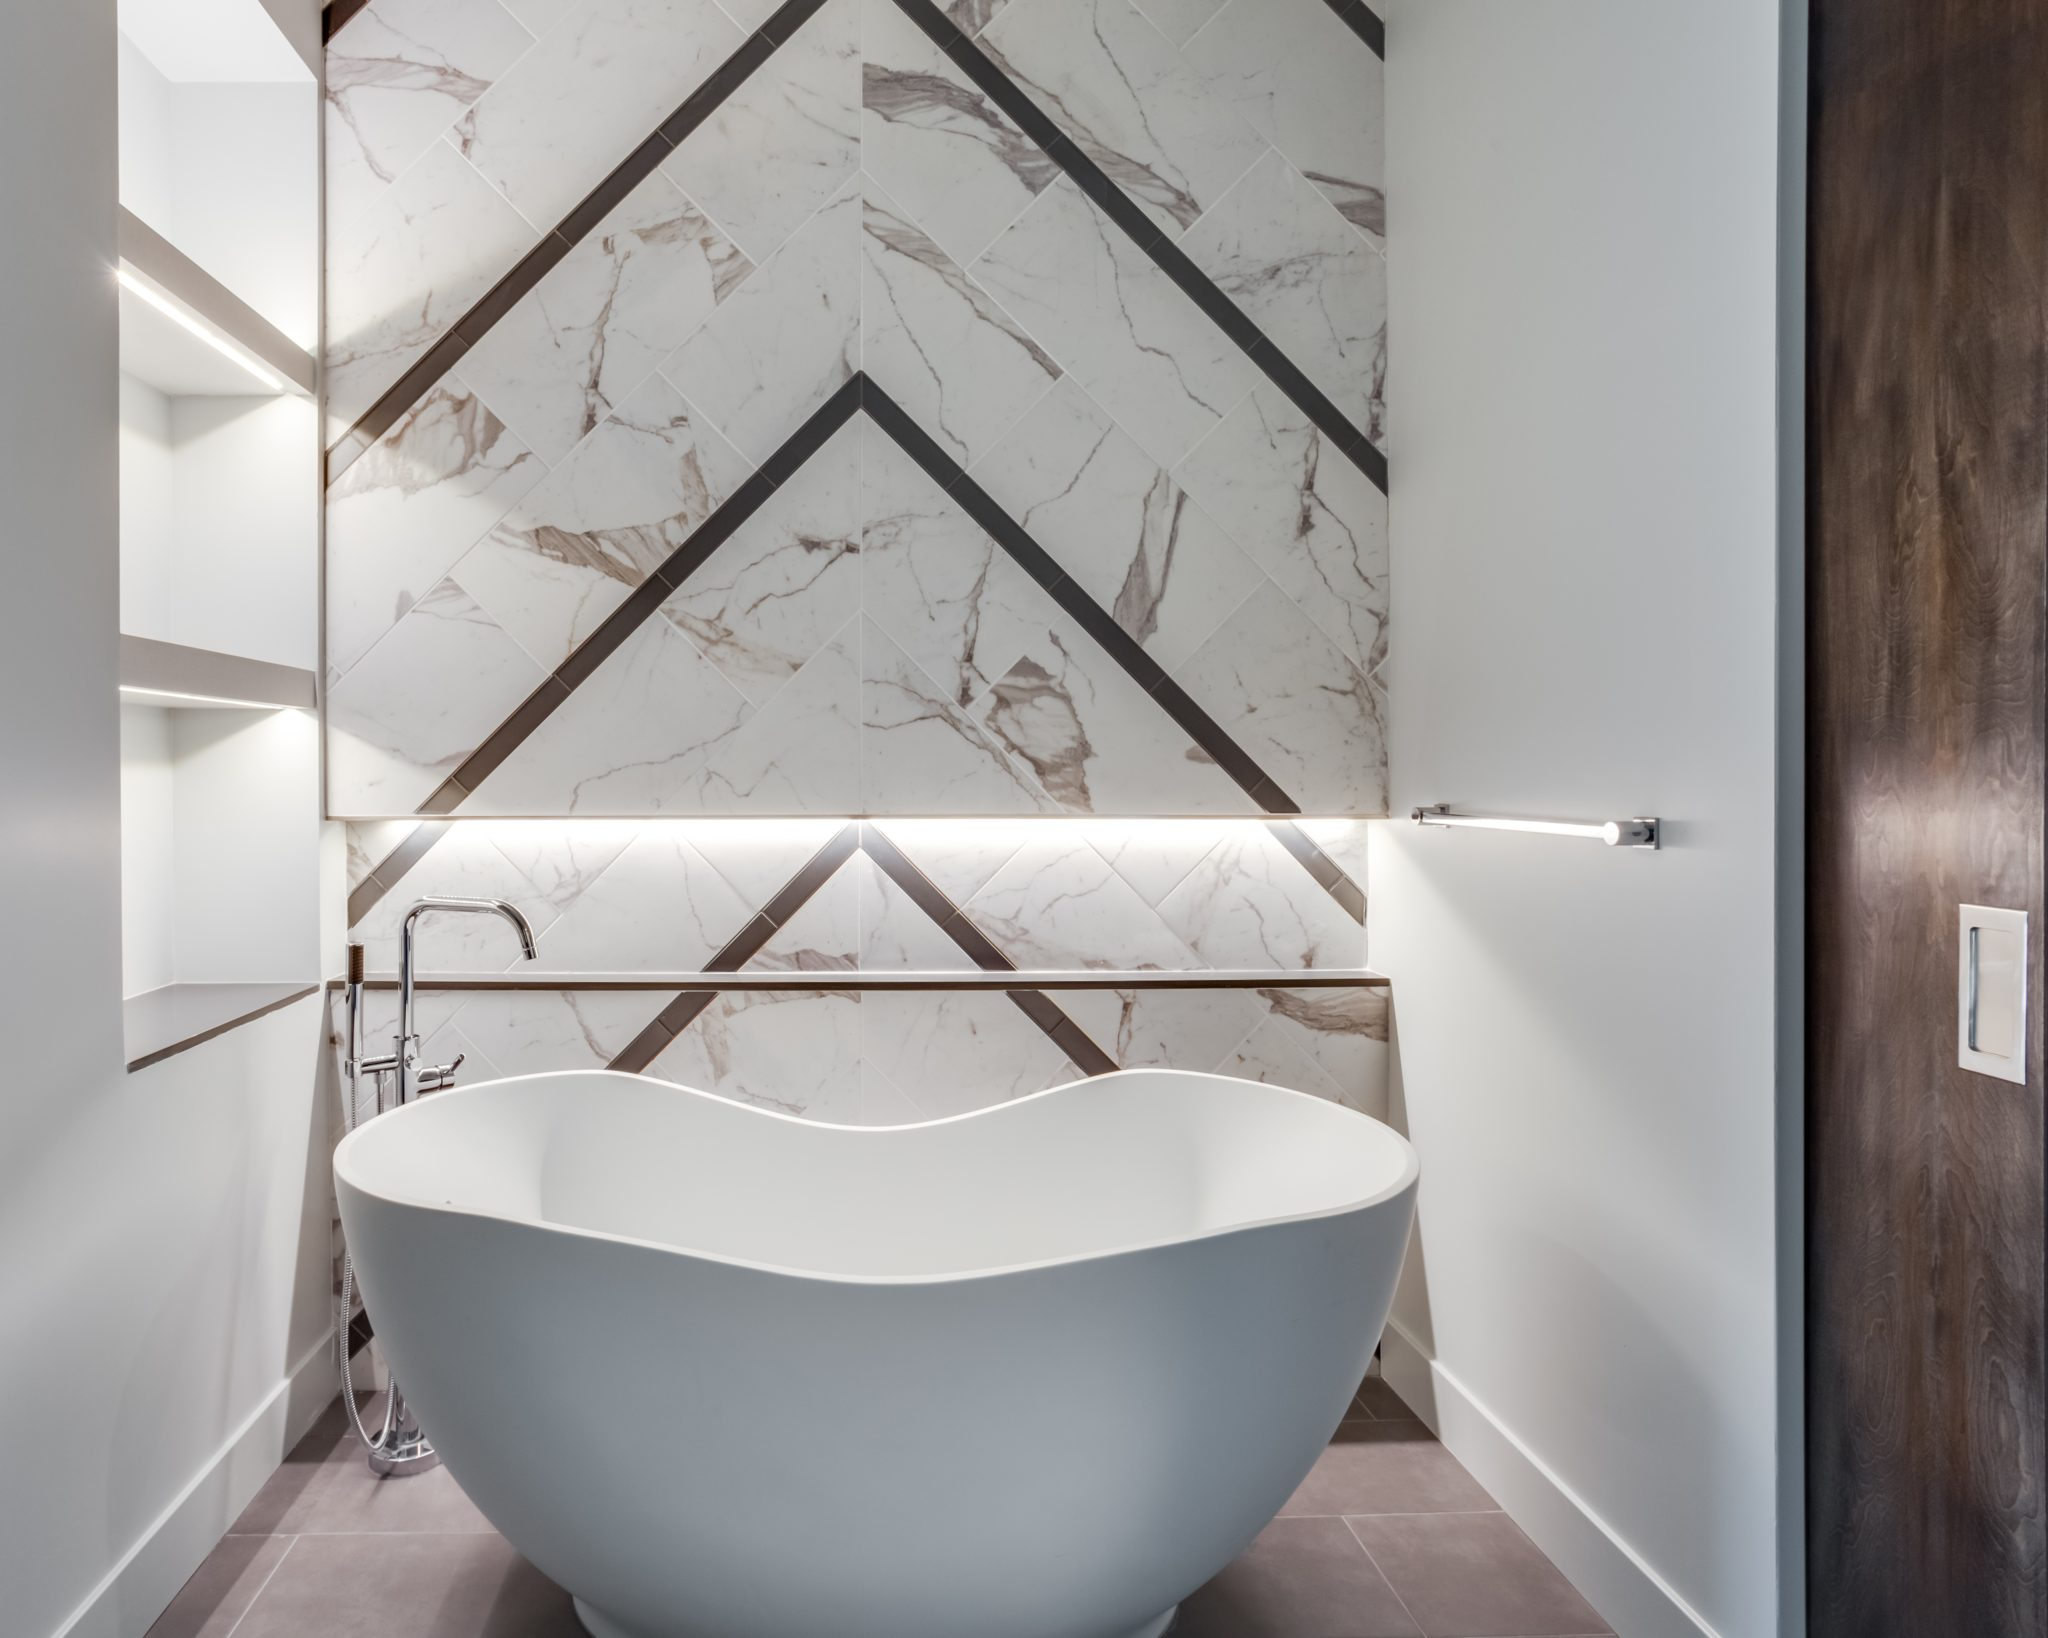 Freestanding tub in master bathroom with chevron white marble wall by Wendy Glaister Interiors